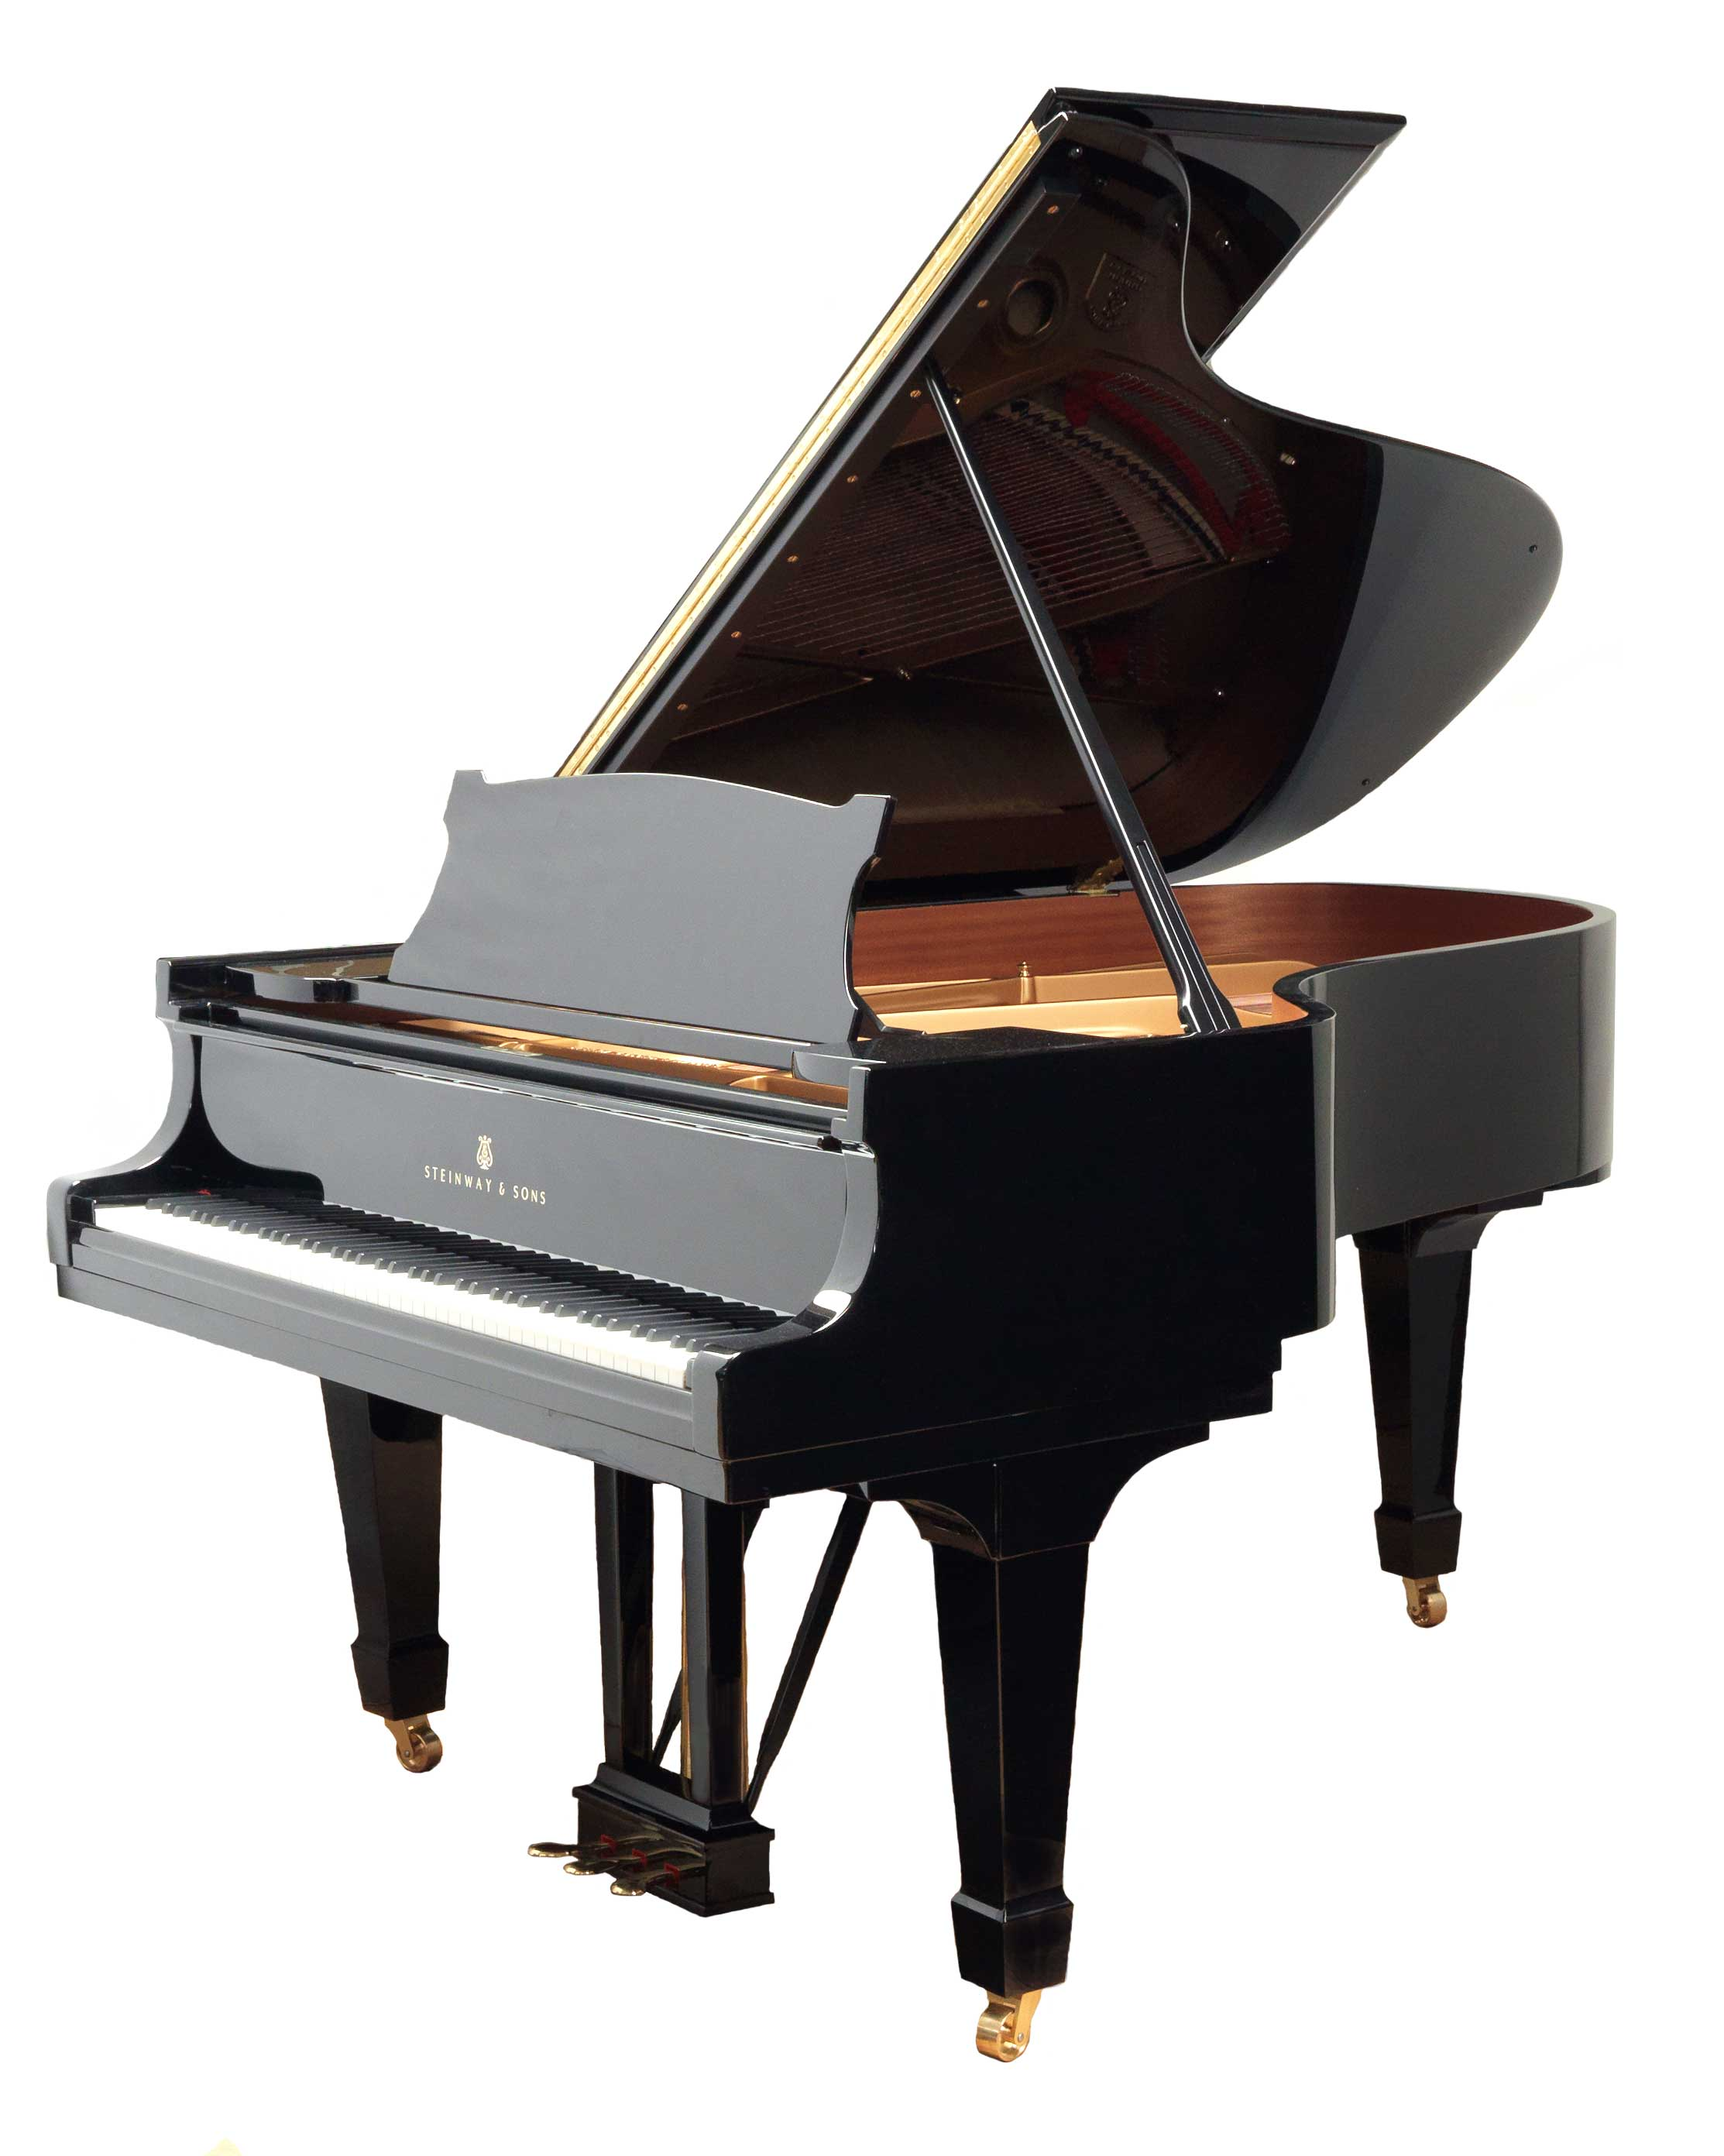 images/produkter/steinway-sons/Steinway-Sons-A-470xxx/Steinway-A-470xxx-Nr.-33_0058.jpg